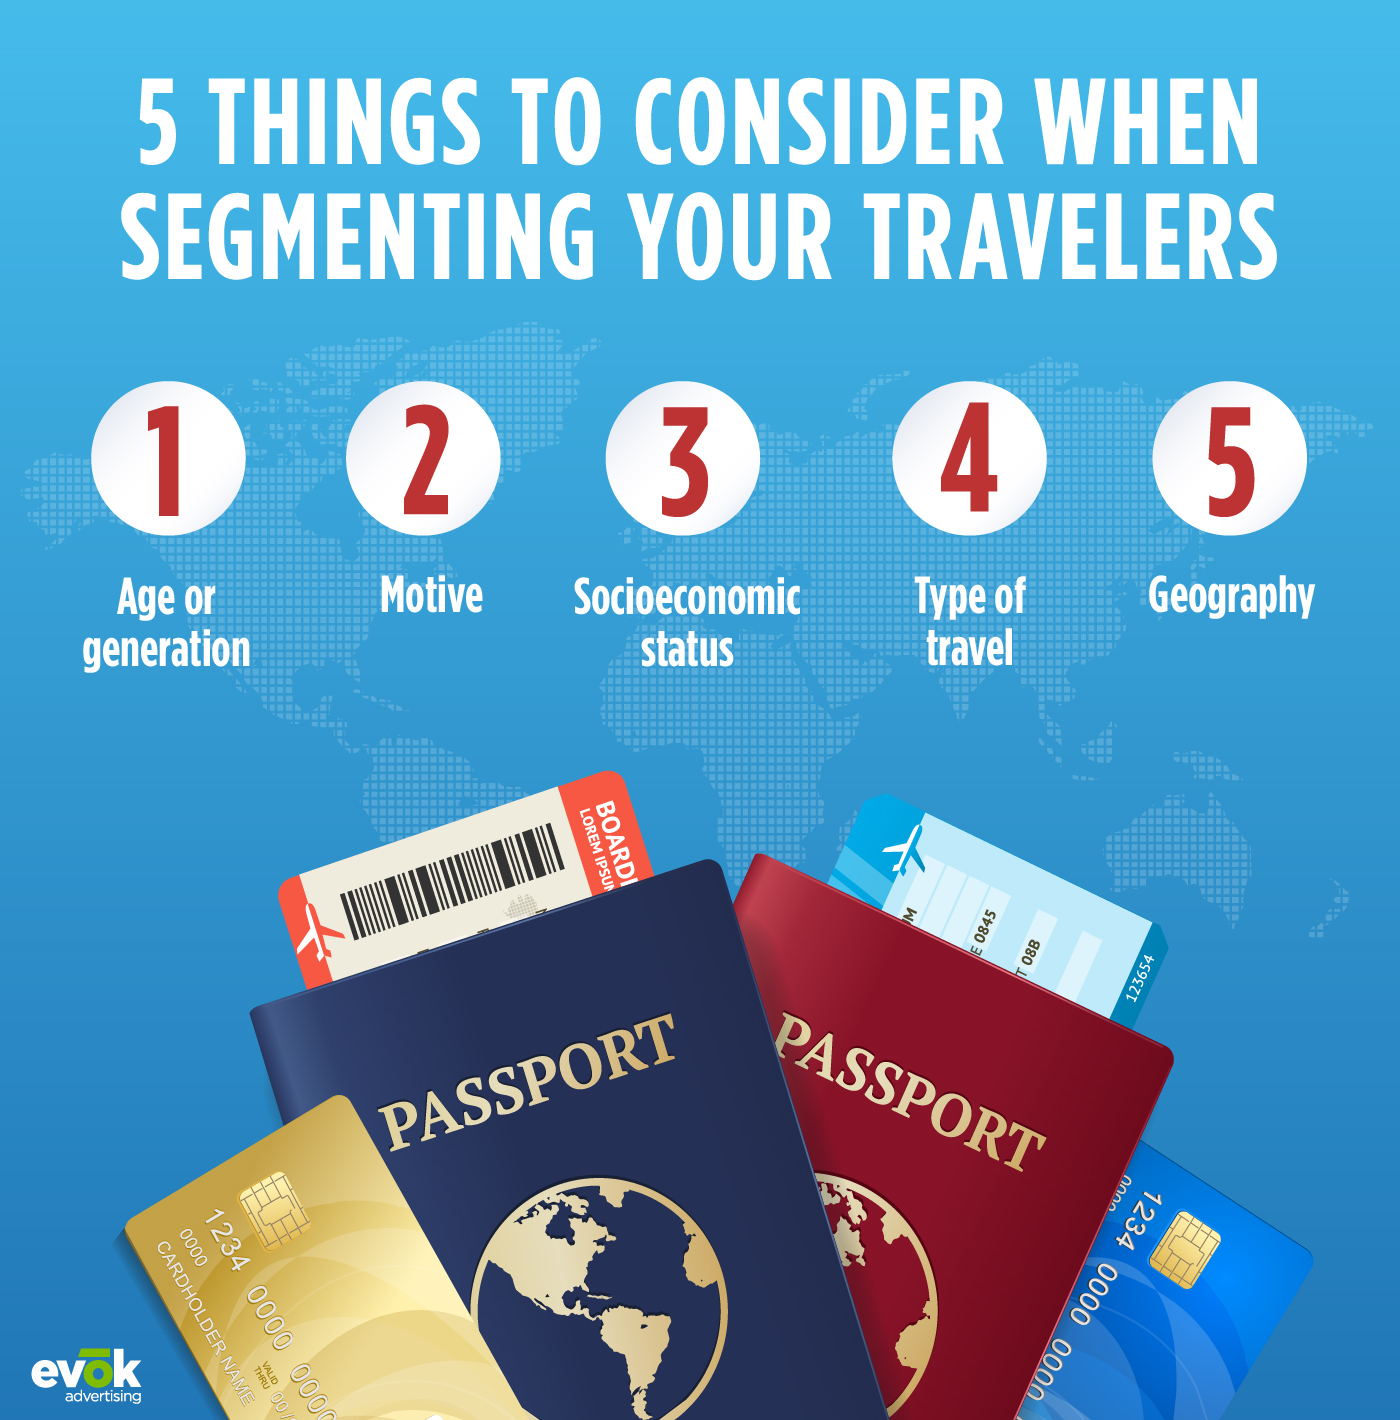 5 Traveler segments that can make all the difference in your digital marketing strategy.